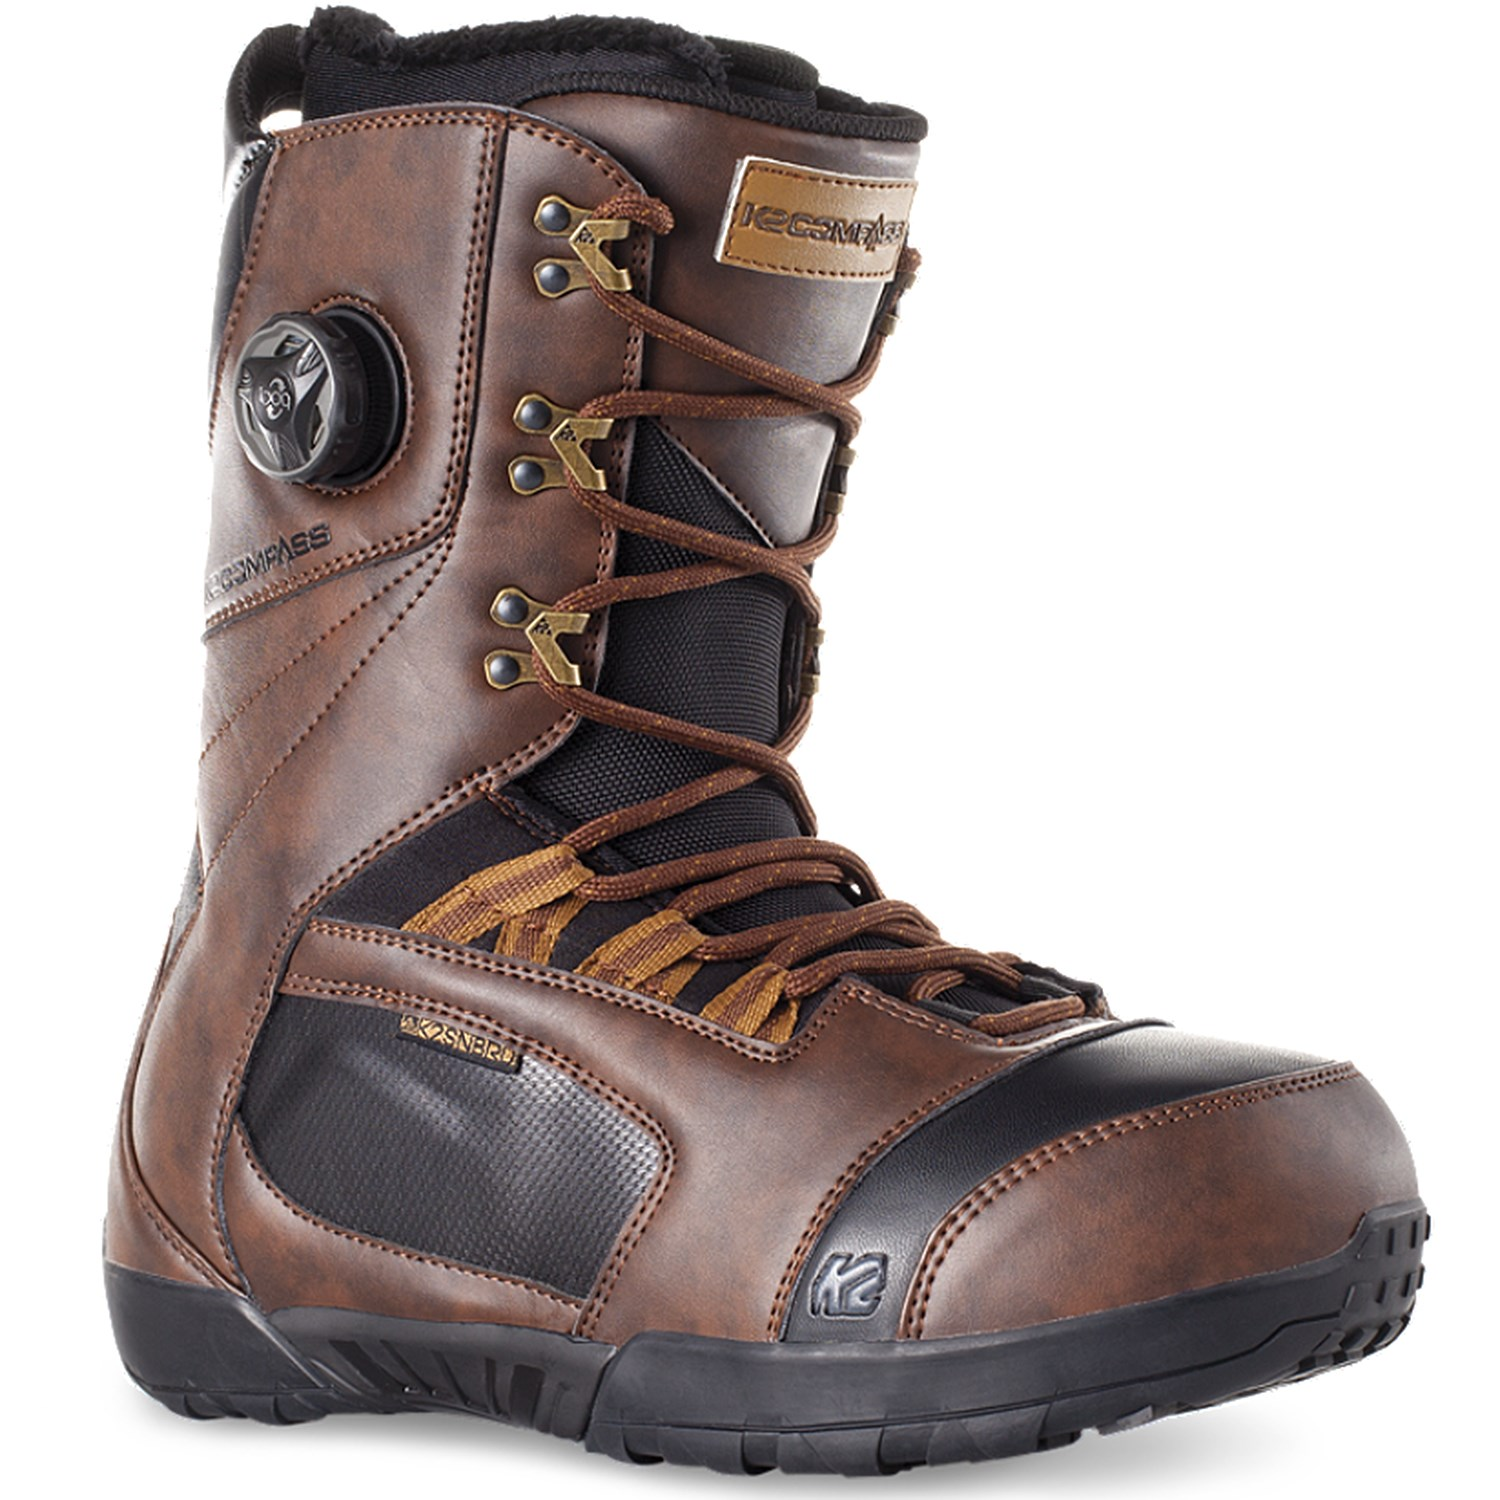 salomon synapse snowboard boots 2009 | Becky (Chain Reaction